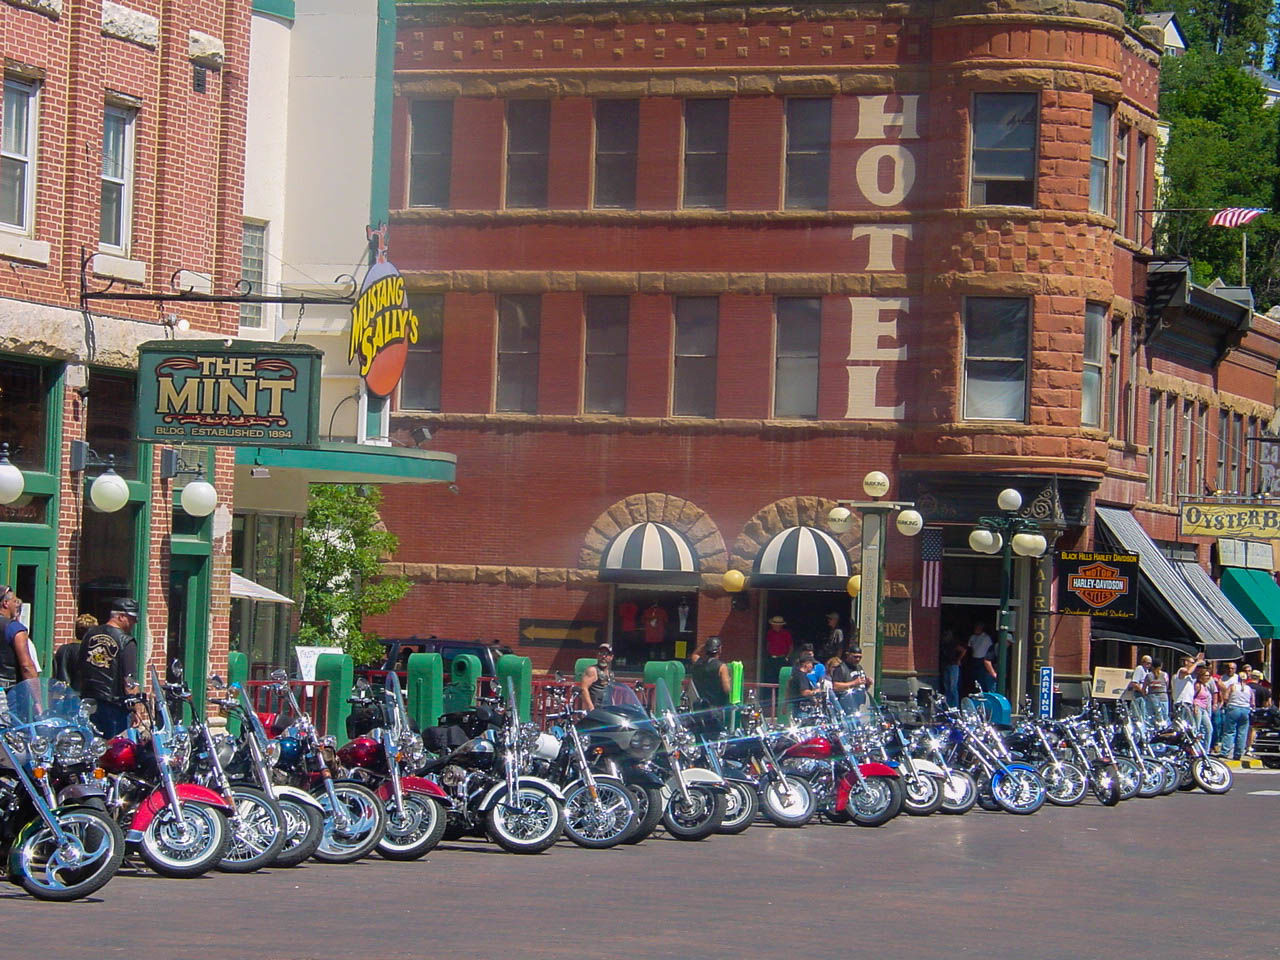 Abundance Architecture Bicycle Building Exterior Built Structure City City Life Collection Crowd Day Deadwood  Land Vehicle Large Group Of People Mode Of Transport Motor Scooter Motorcycle Outdoors Parked Parking Person Retail  Roadside Stationary Sturgis Transportation